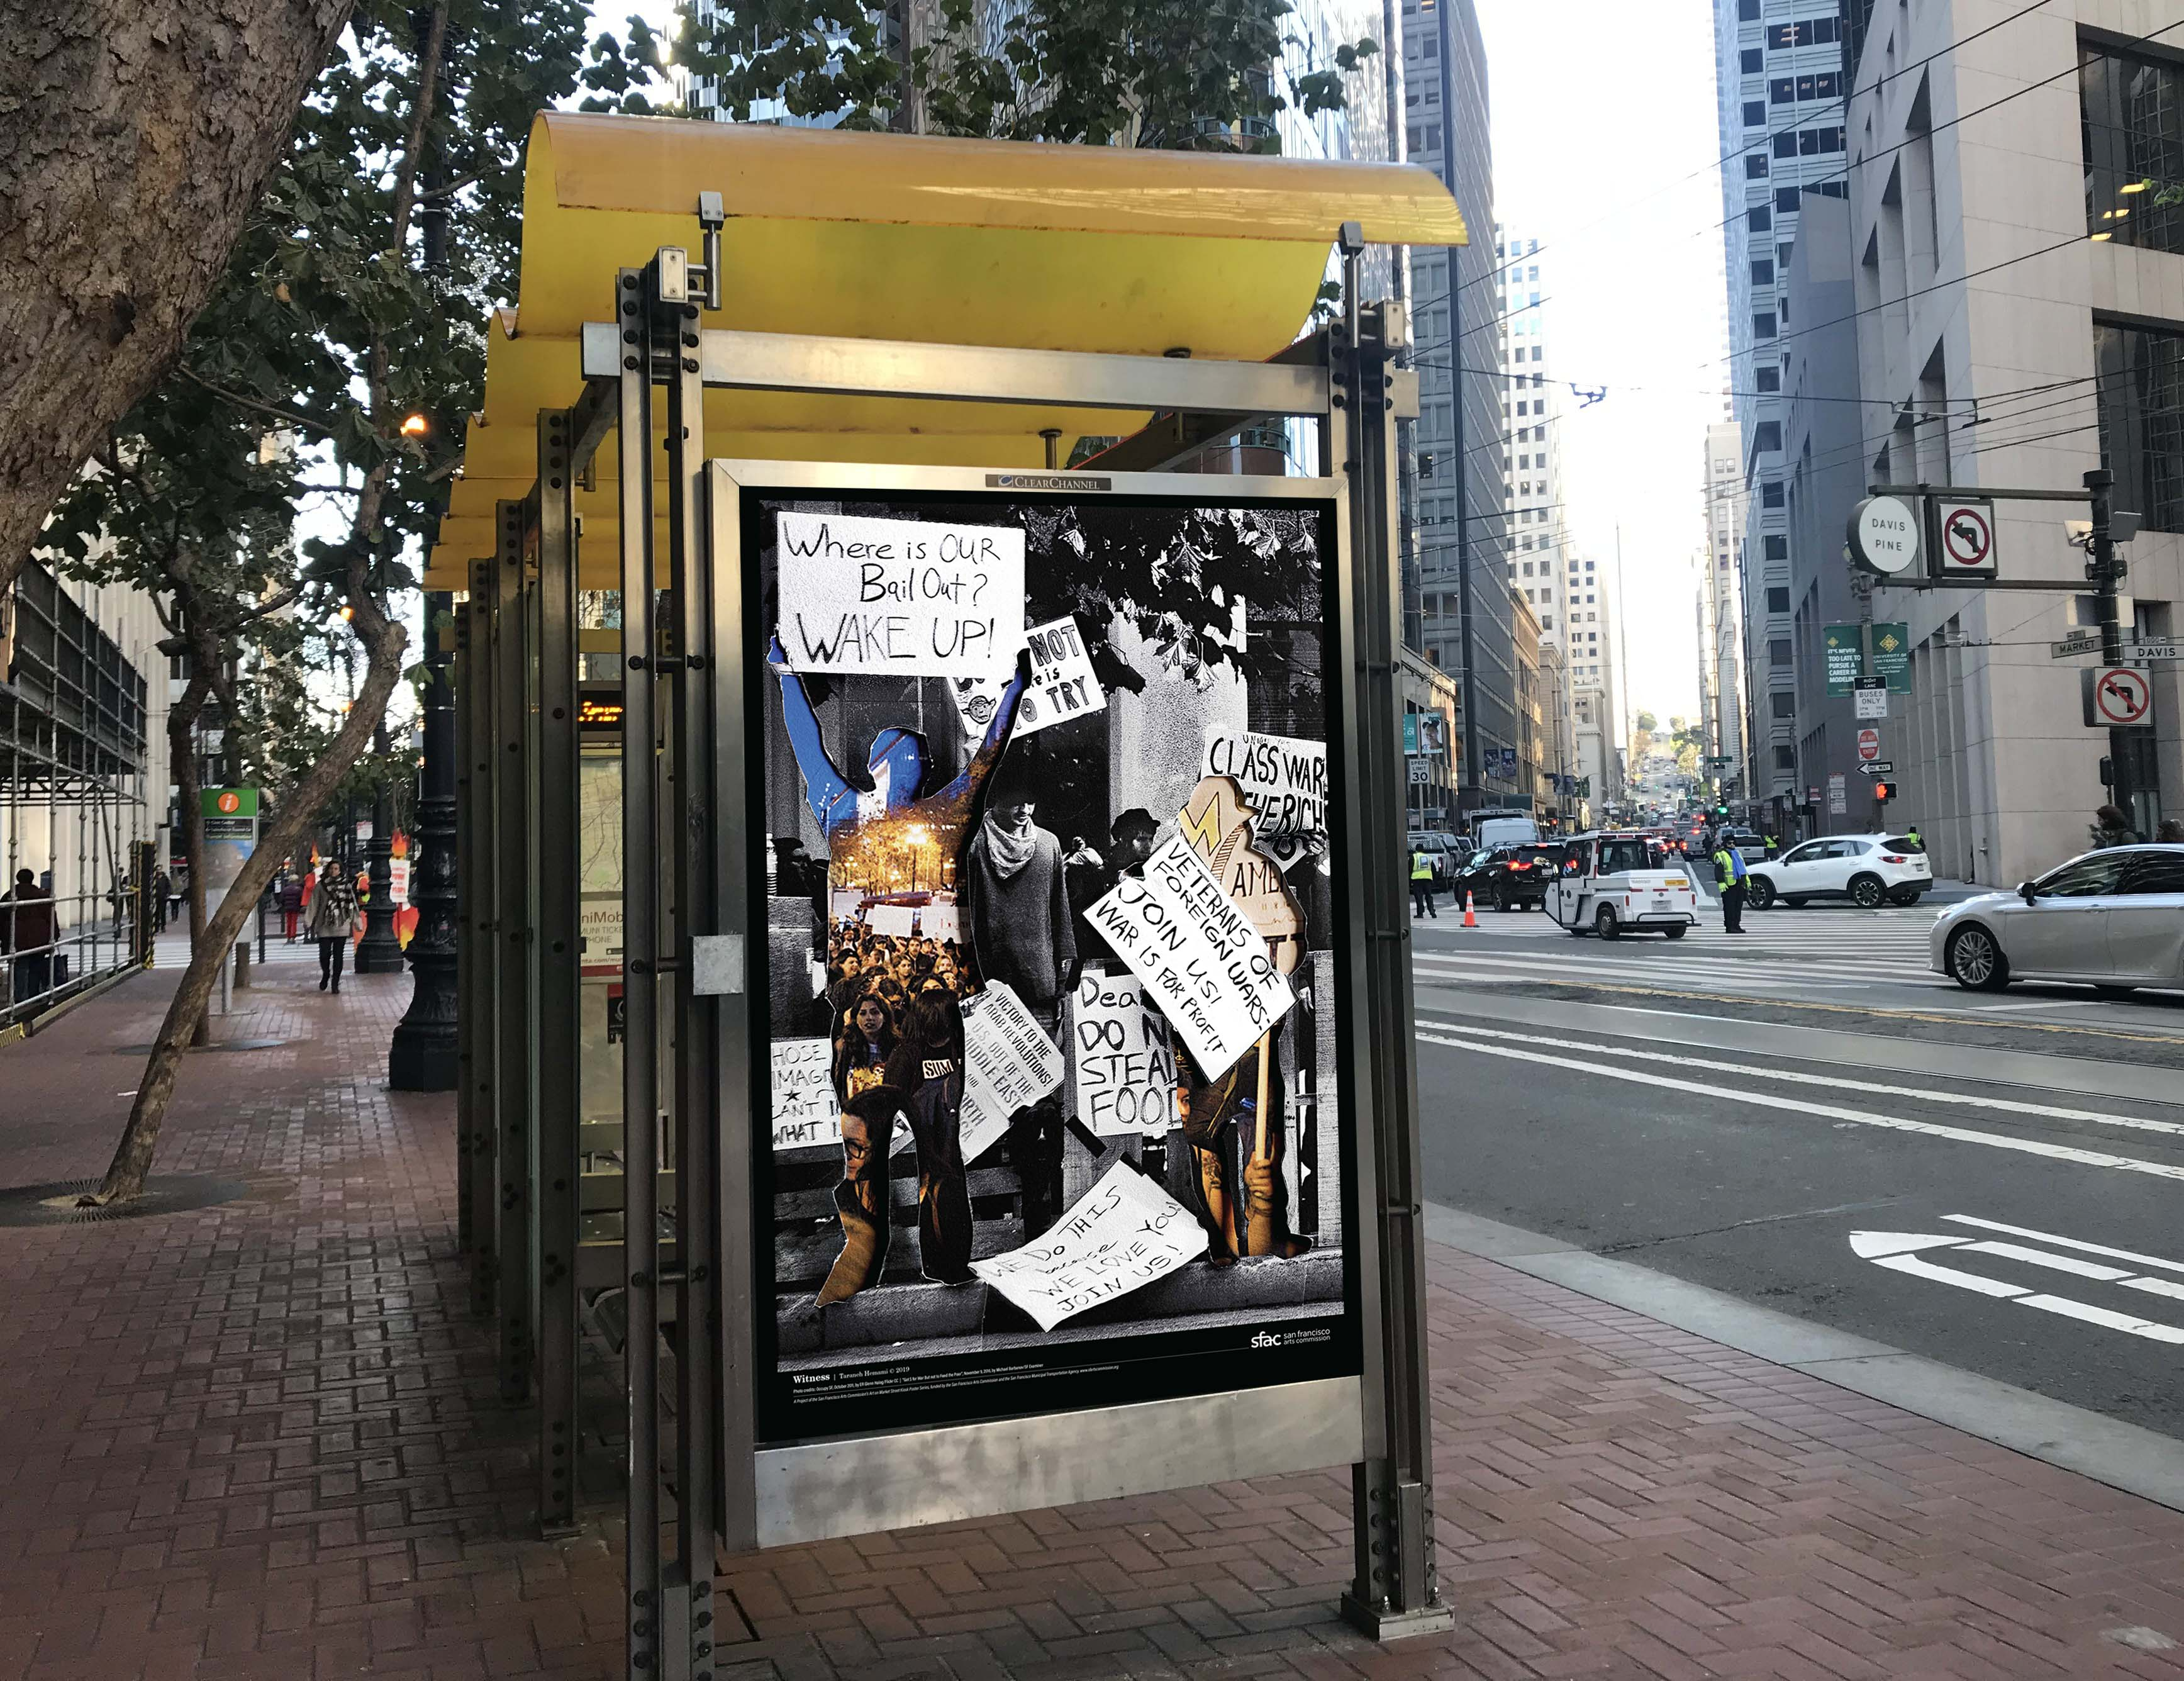 Bus stop with art poster design in kiosk.